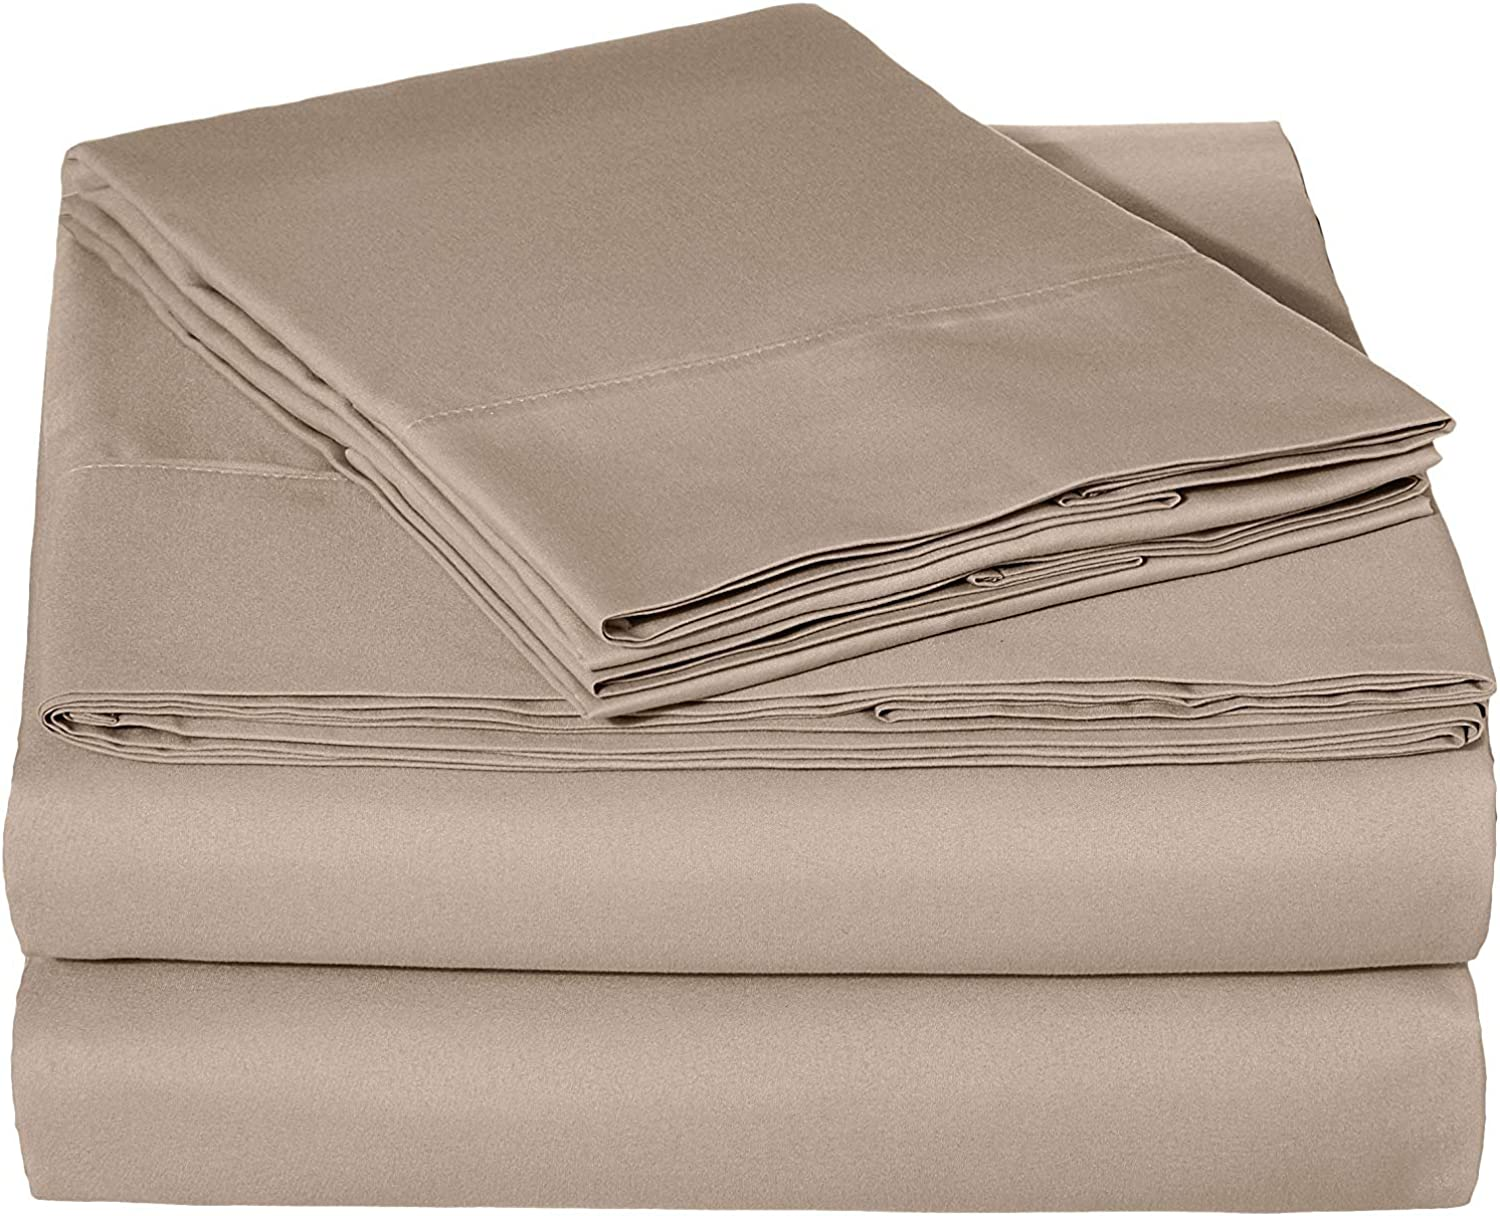 Wamsutta Dreamios 625-Thread-Count 100% Egyptian Cotton Olympic Queen Sheet Set in Taupe